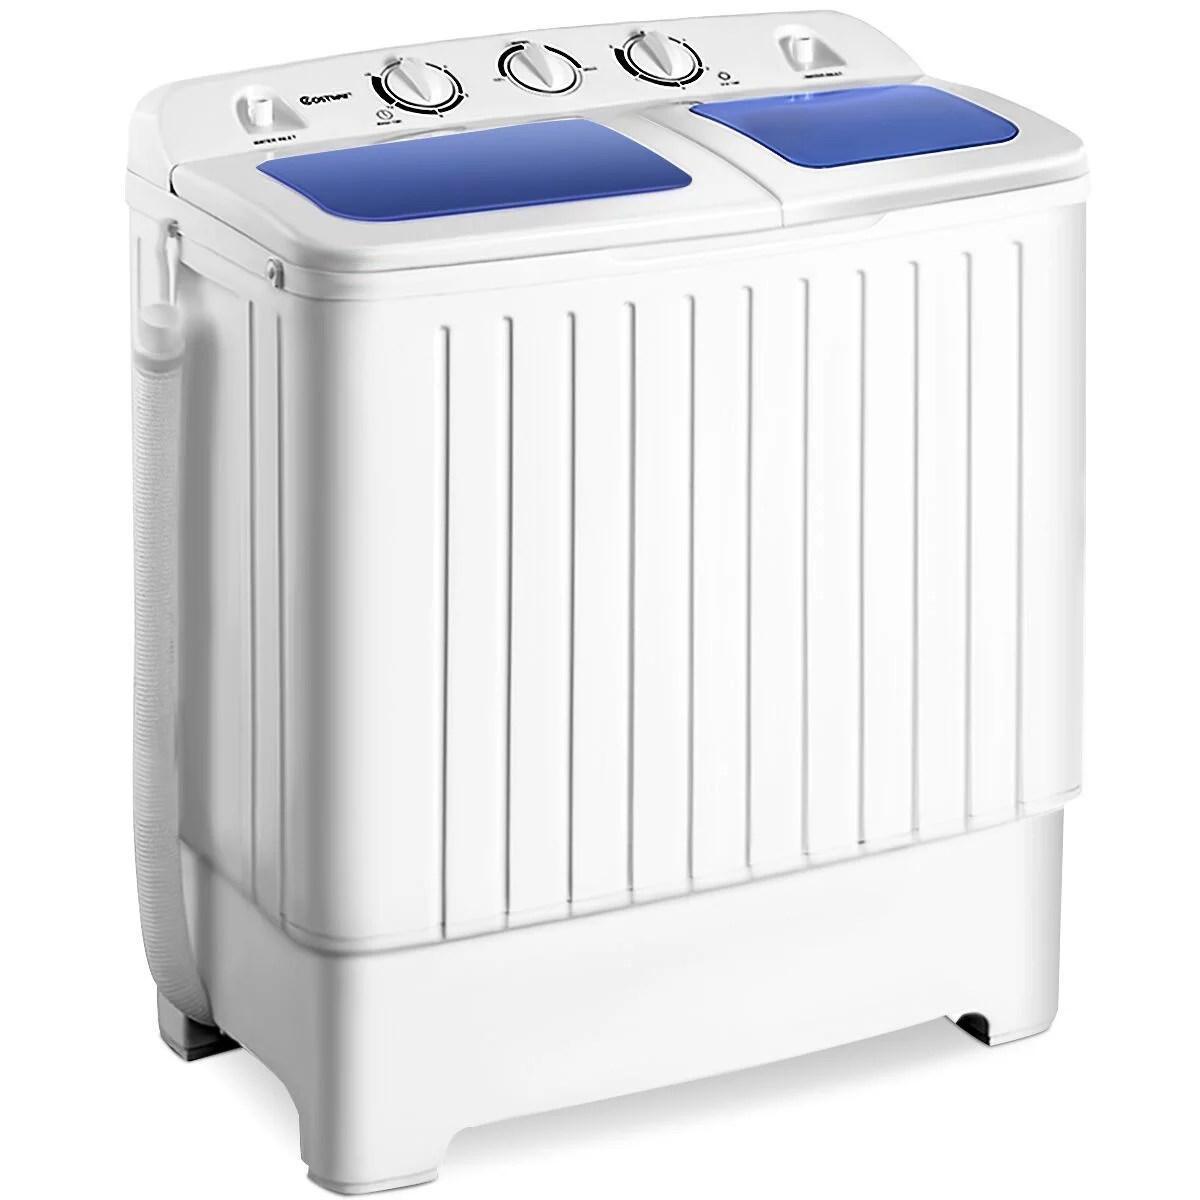 Washer And Dryer Calgary Costway Portable Mini Compact Twin Tub 17 6lb Washing Machine